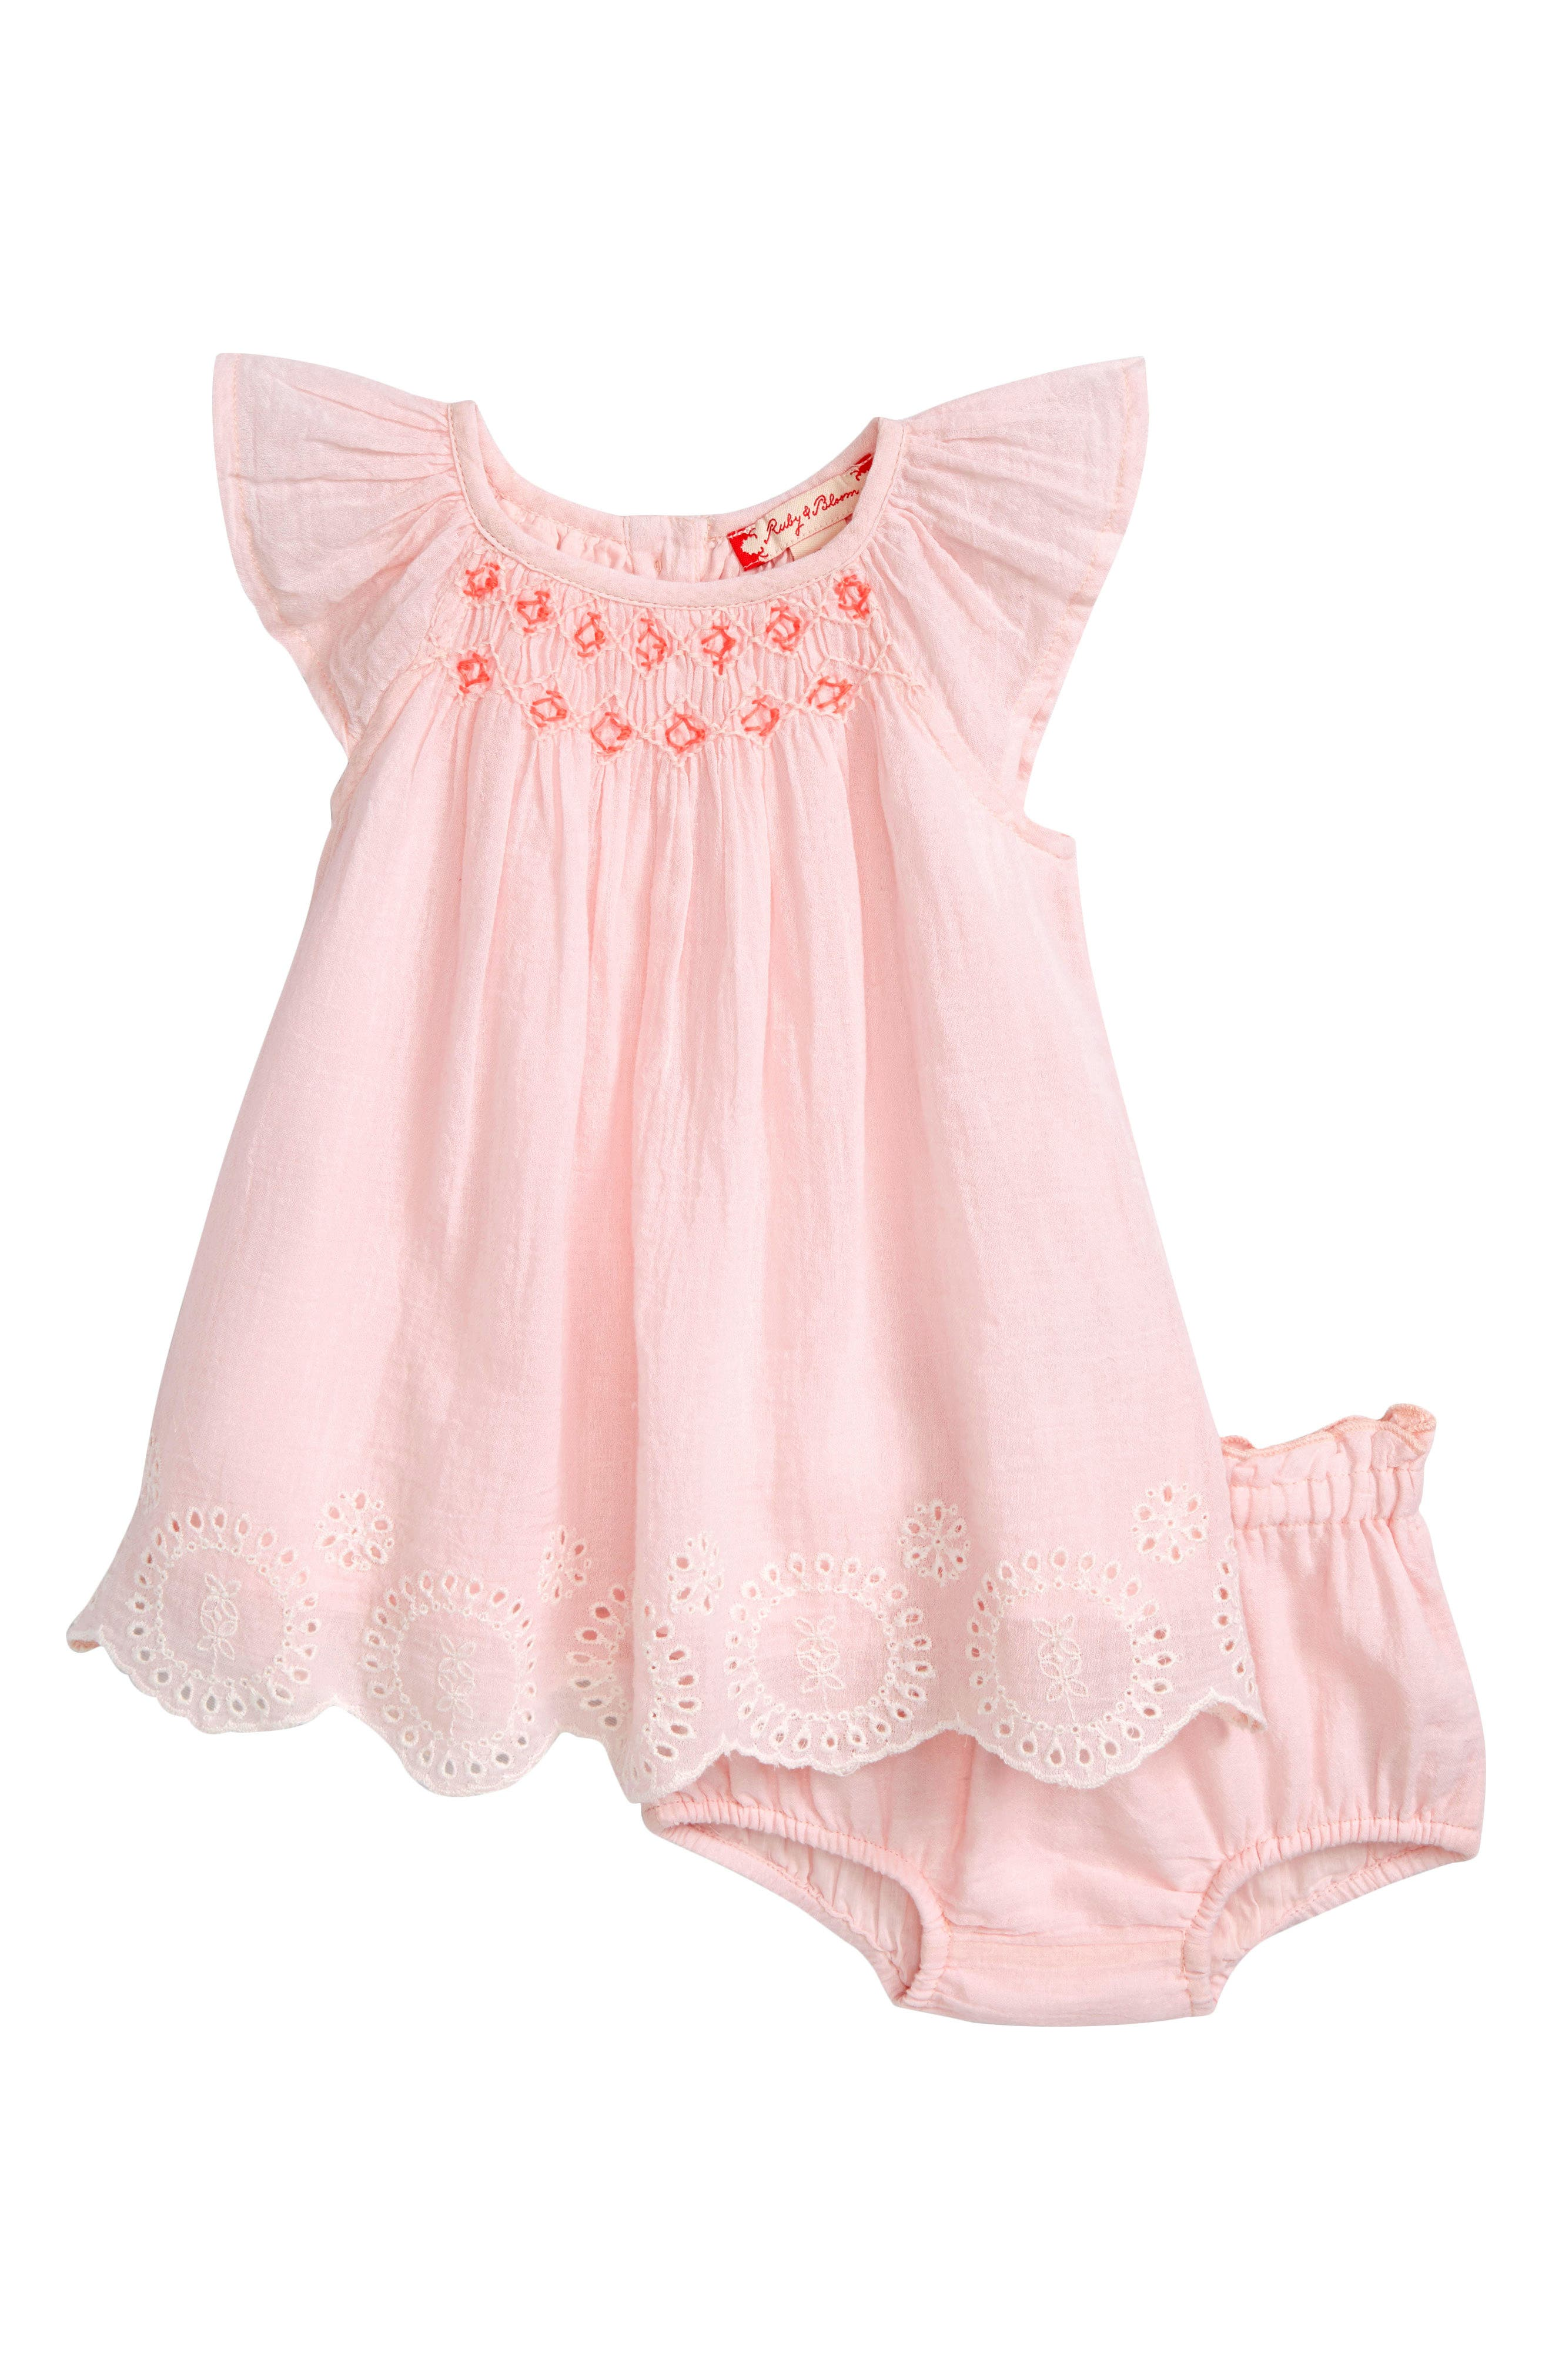 Neon Smocked Dress,                             Main thumbnail 1, color,                             Pink Amour